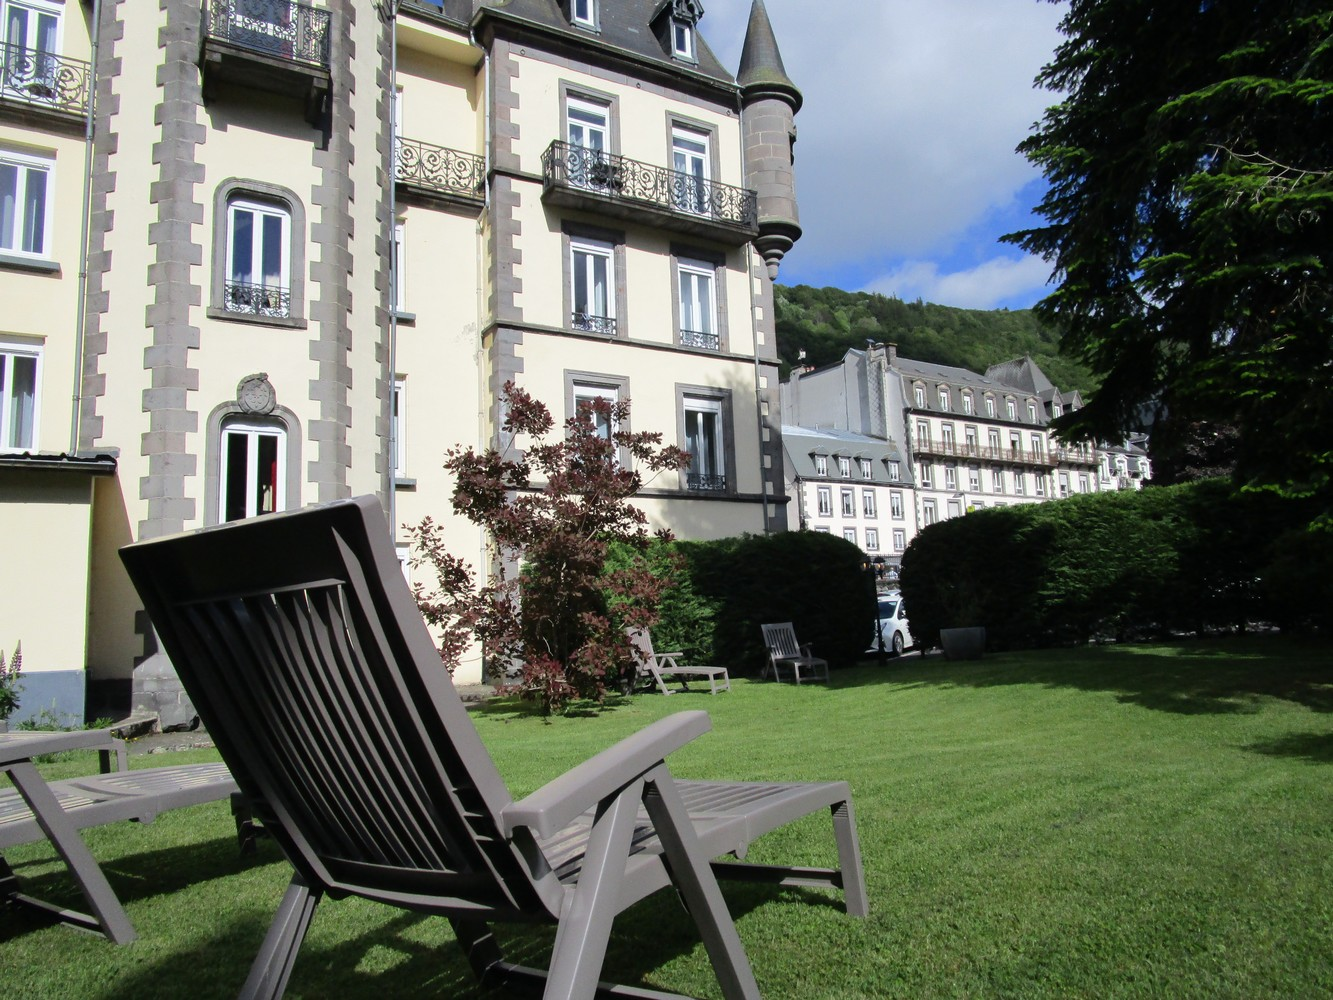 Le jardin du Grand-Hôtel - photo 5